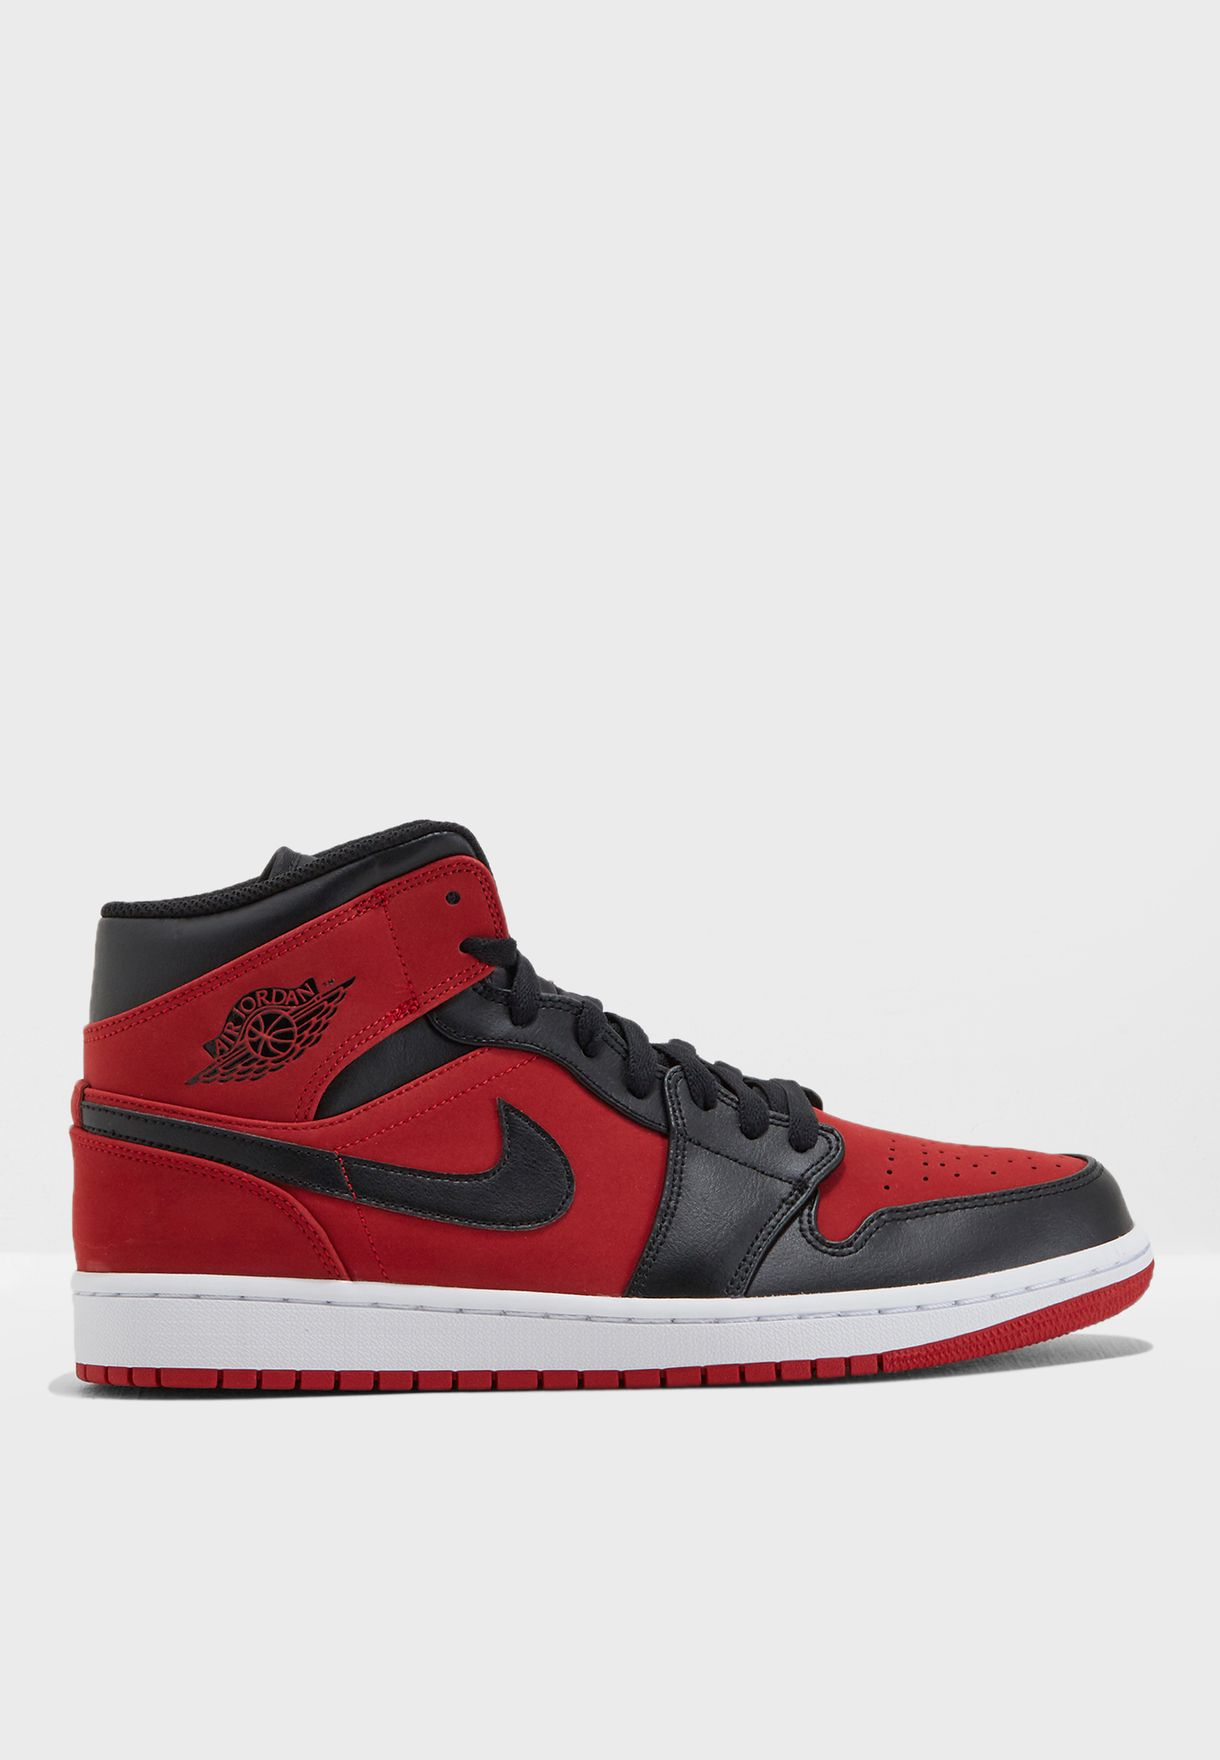 cheaper cd54a d9653 Air Jordan 1 Mid